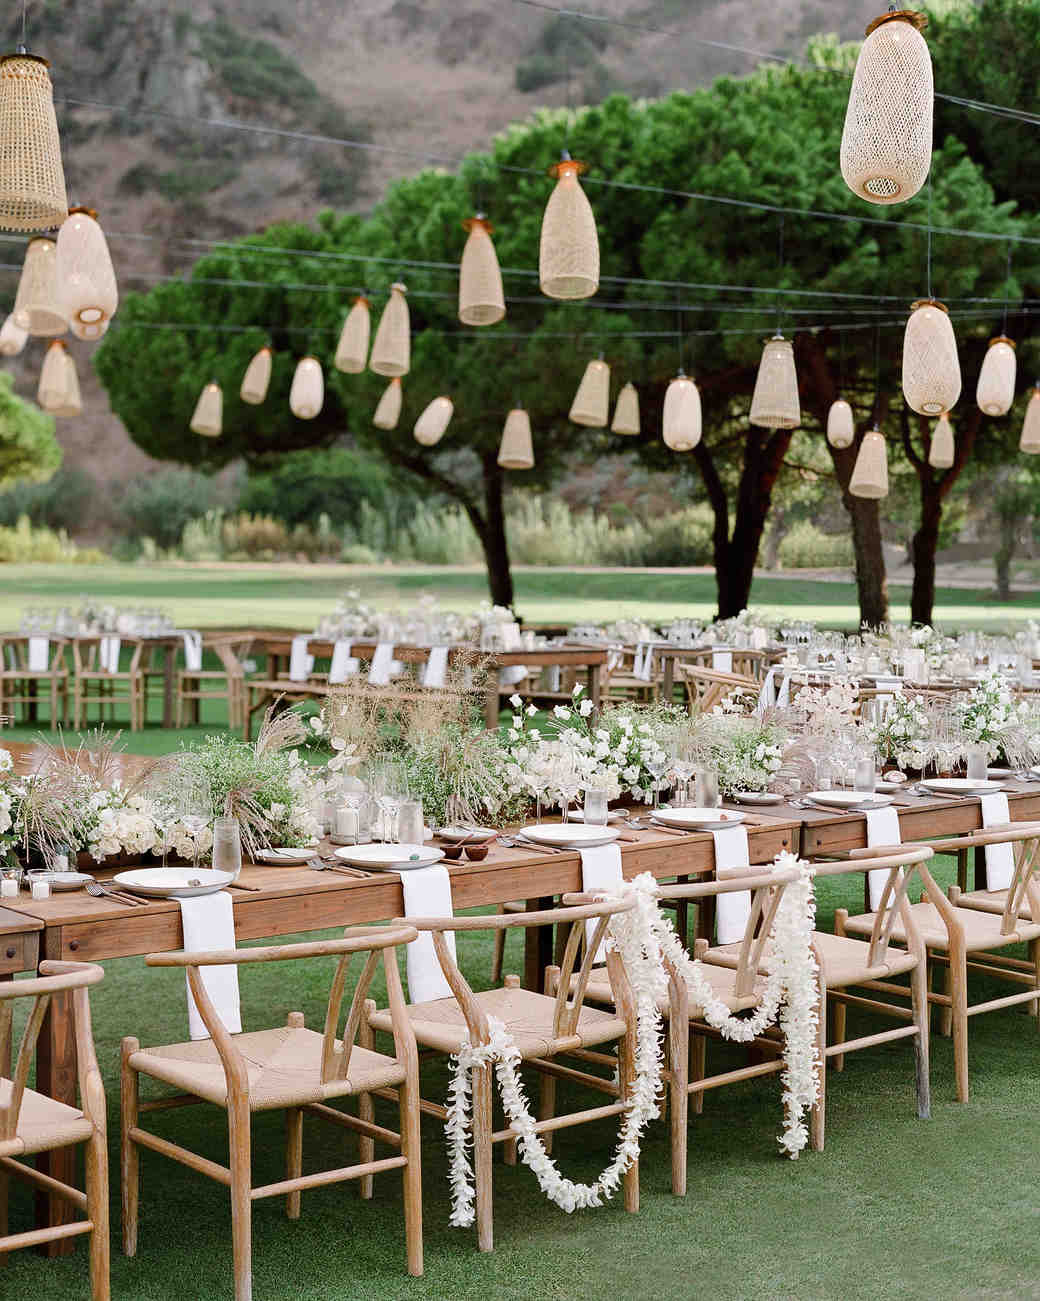 alex drew california wedding reception tables lanterns